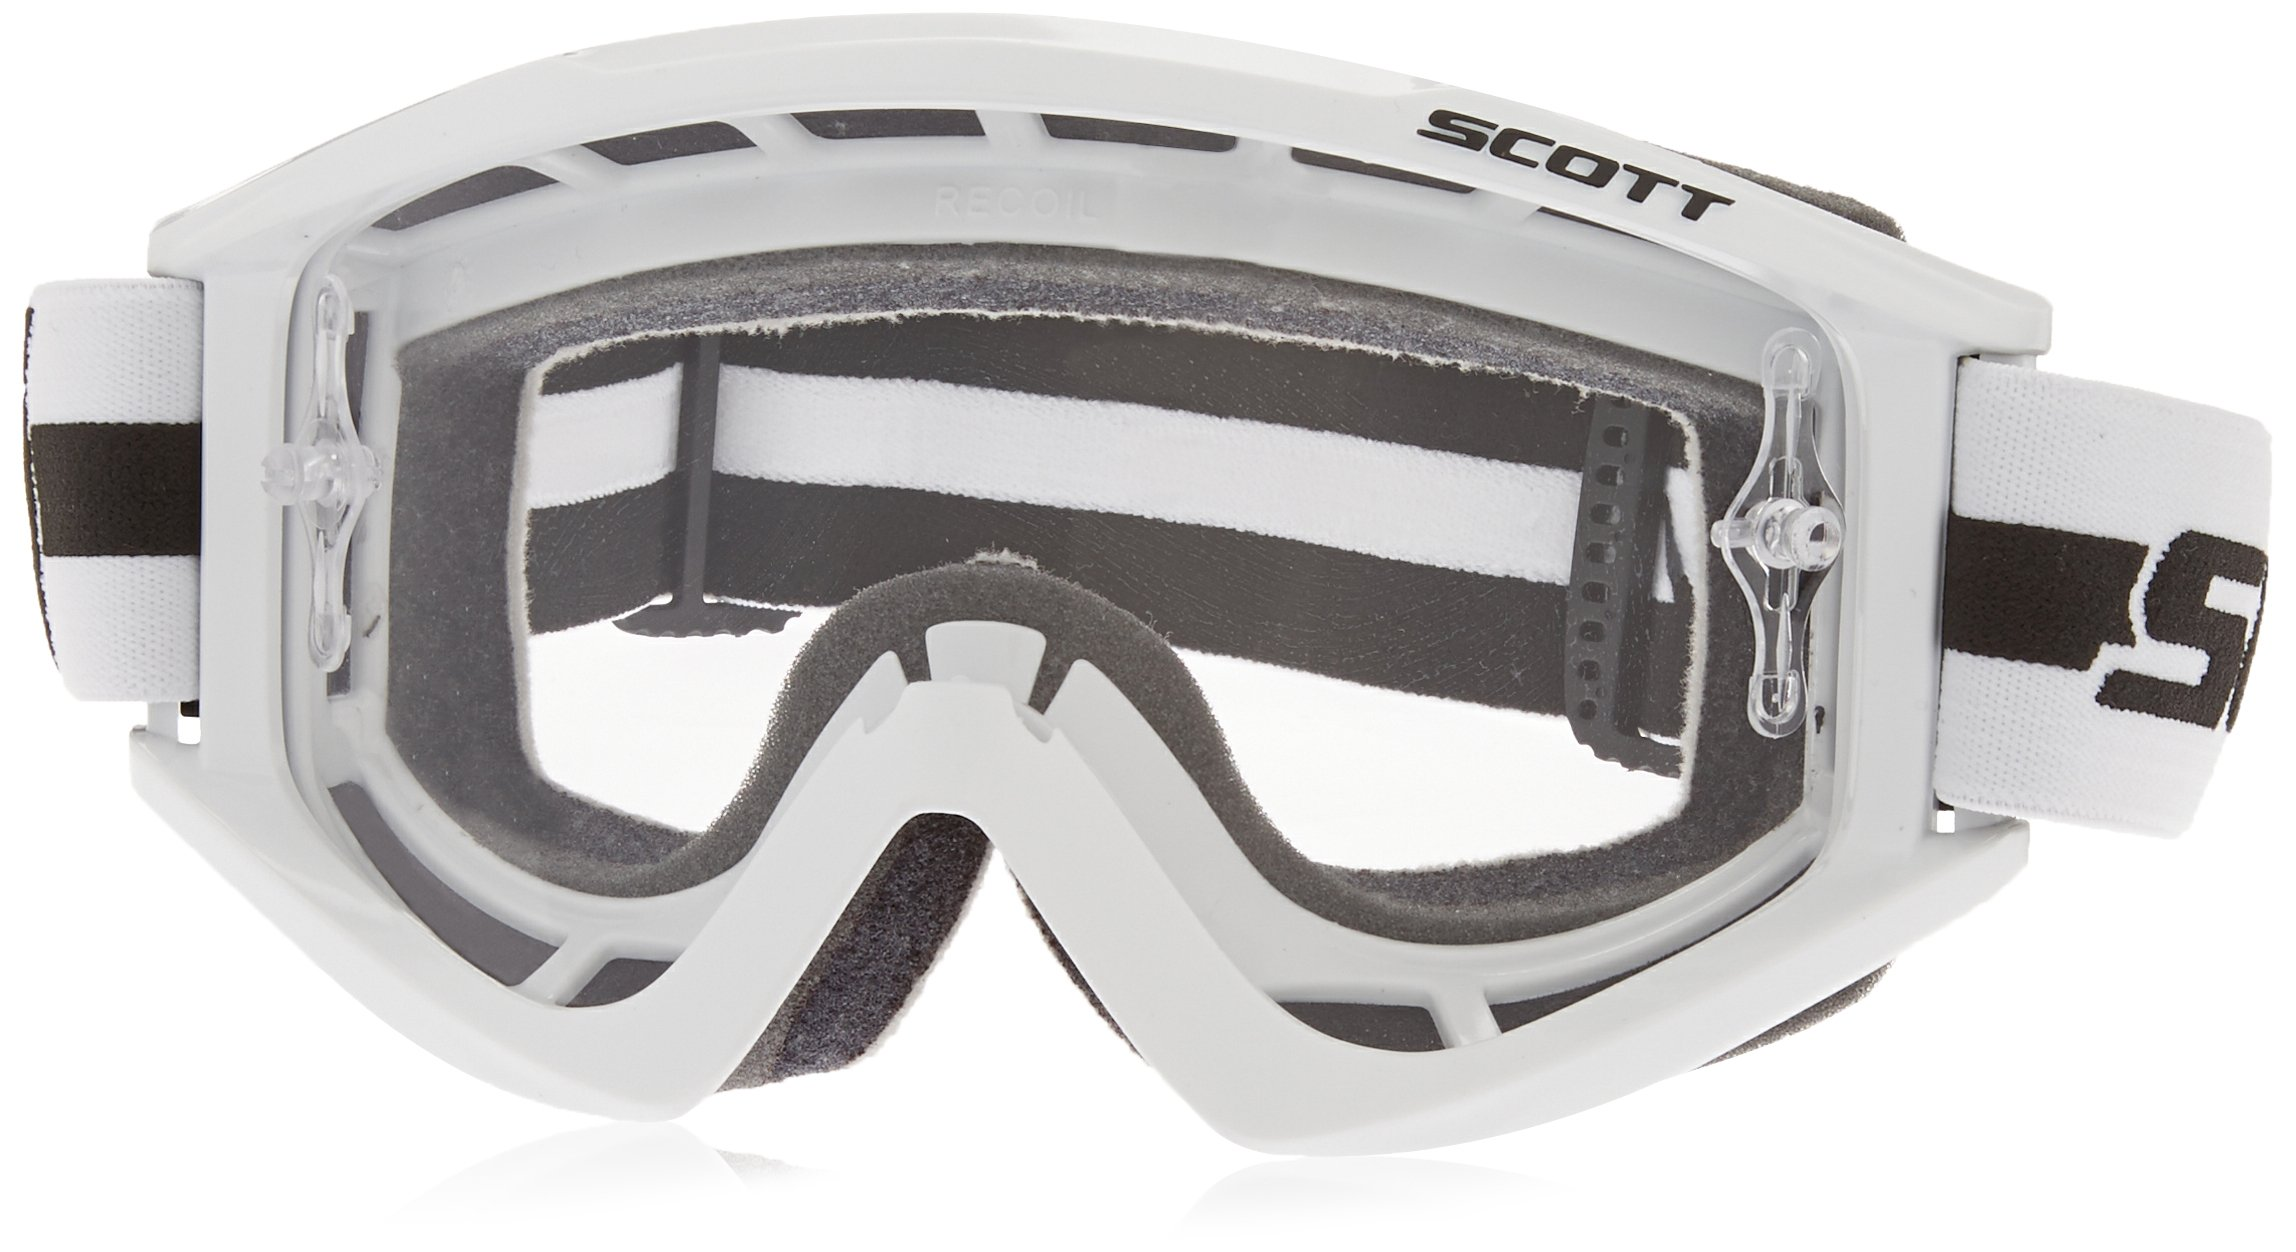 Scott Sports RecoilXi Pro Goggles with Works Clear AFC Lens (White, One Size)